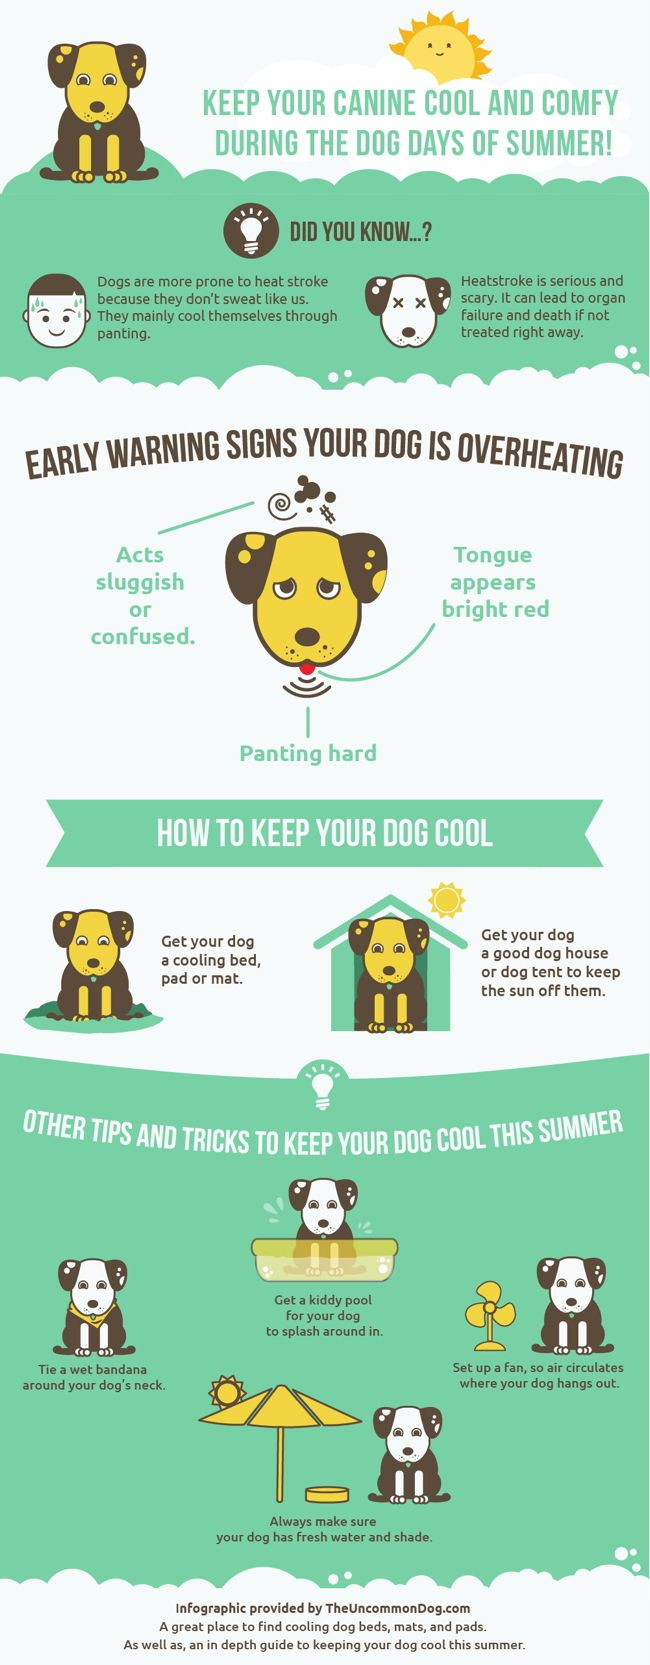 Help your dog beat the heat Summer heat can be deadly for dogs. And it's already been a long, hot summer.Help keep your dog safe with these great tips from theuncommondog.com